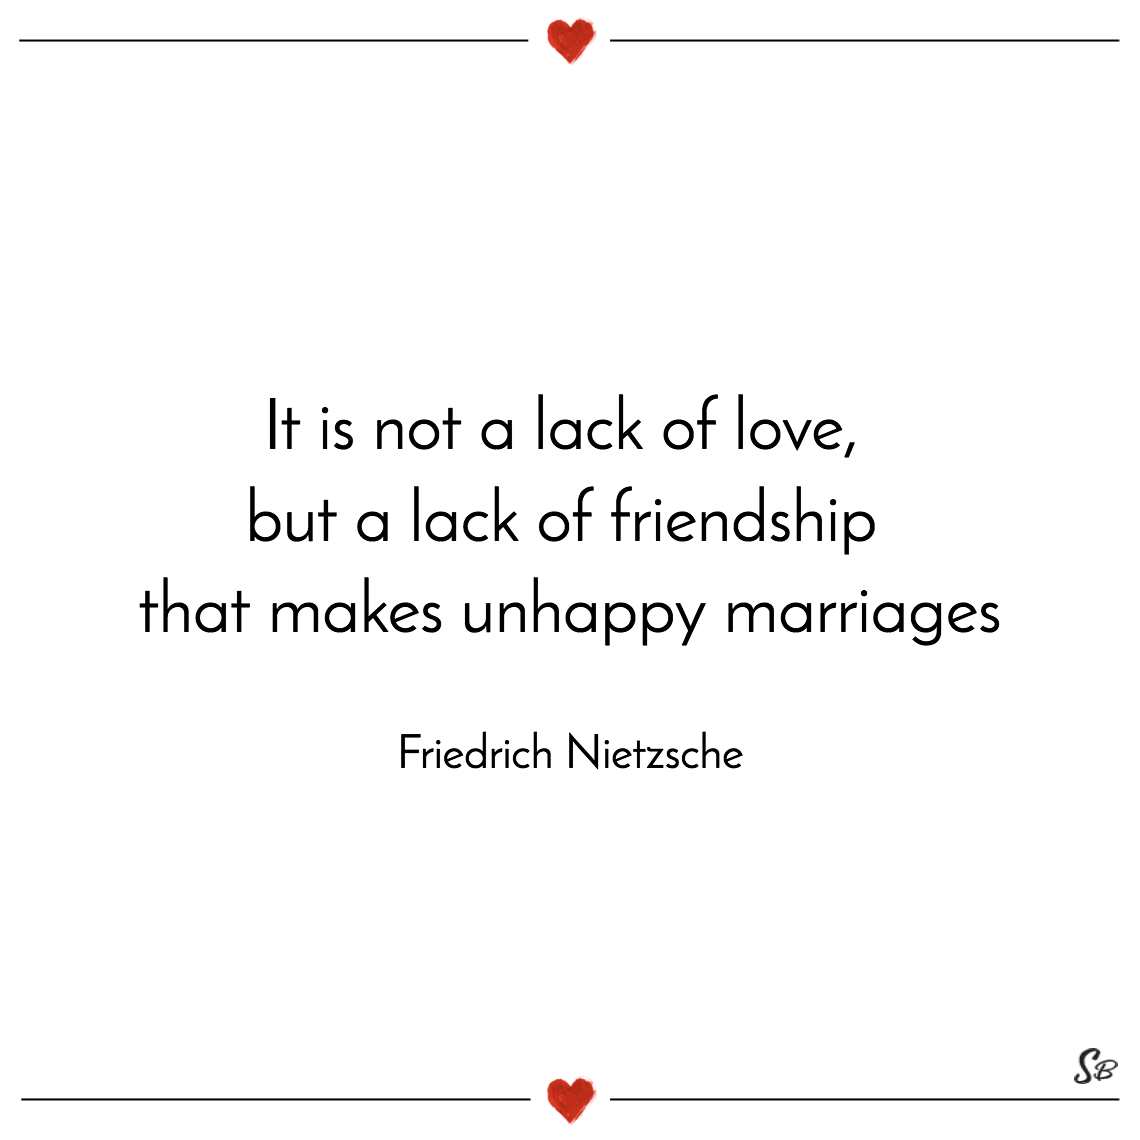 Quotes About Love And Friendship Brilliant 31 Beautiful Marriage Quotes About Love And Friendship  Spirit Button